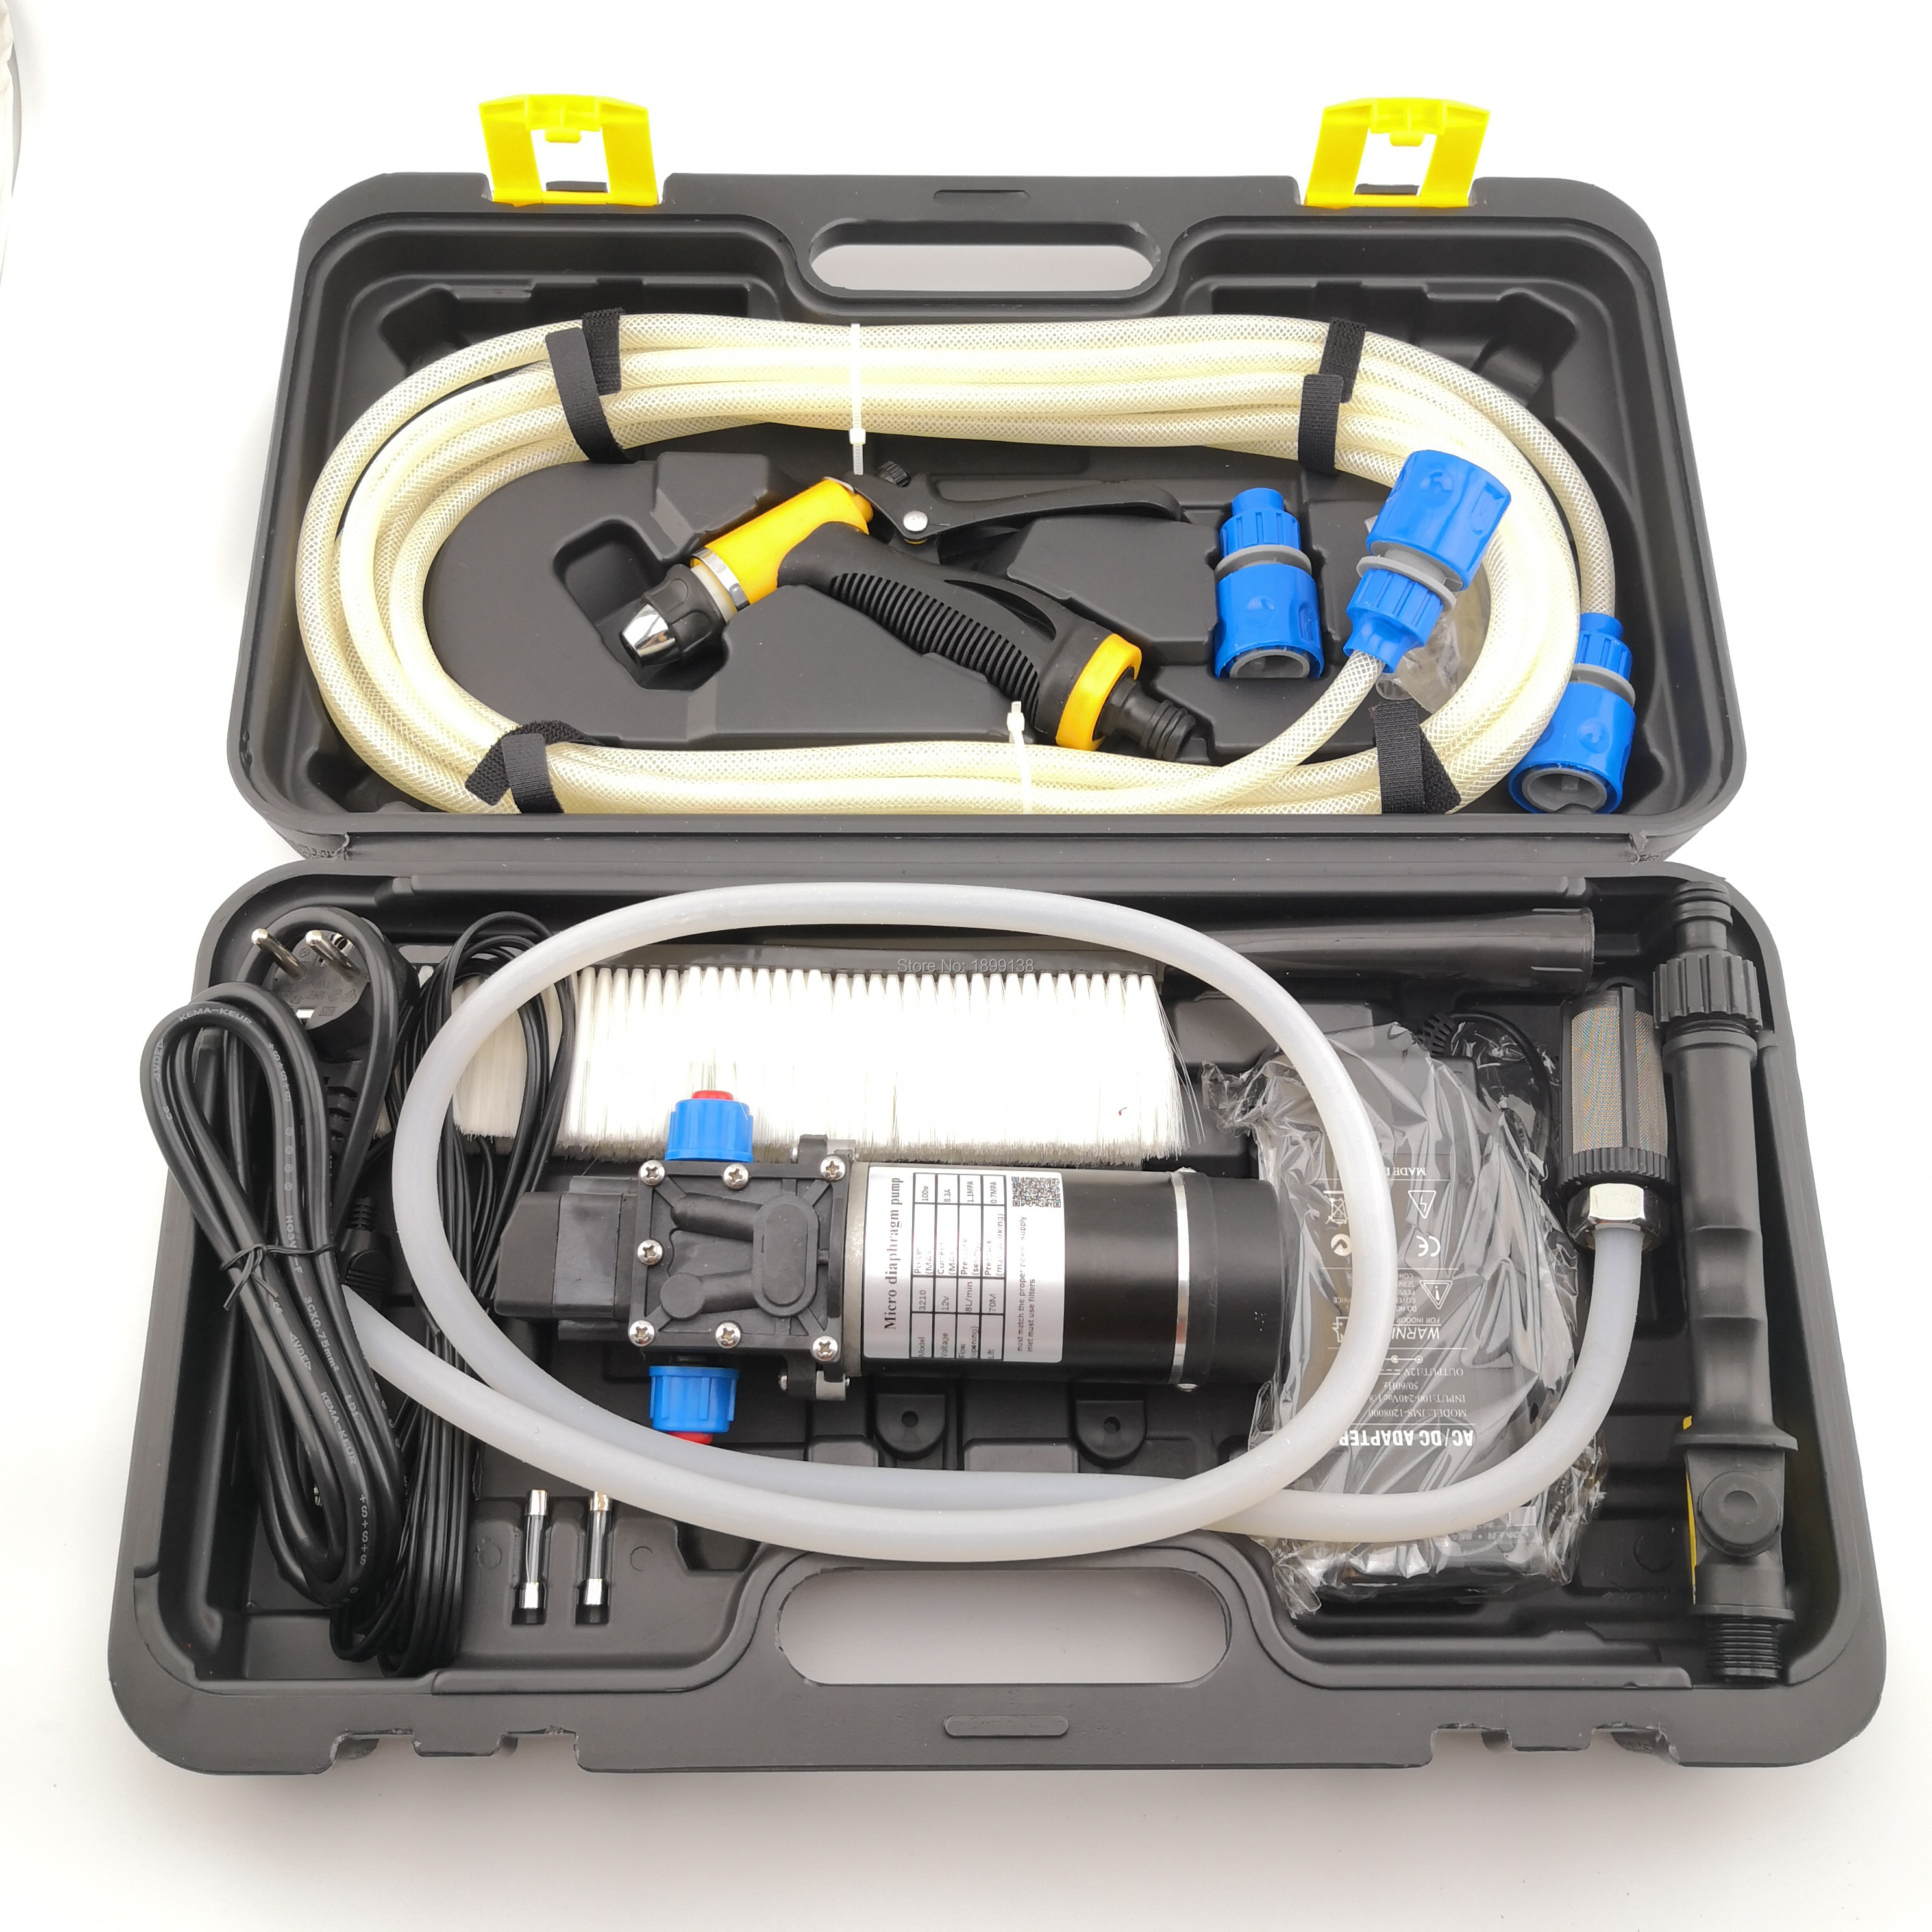 automatic pressure control 100w electric portable car wash 12v high pressure tool kit with 2 adapters